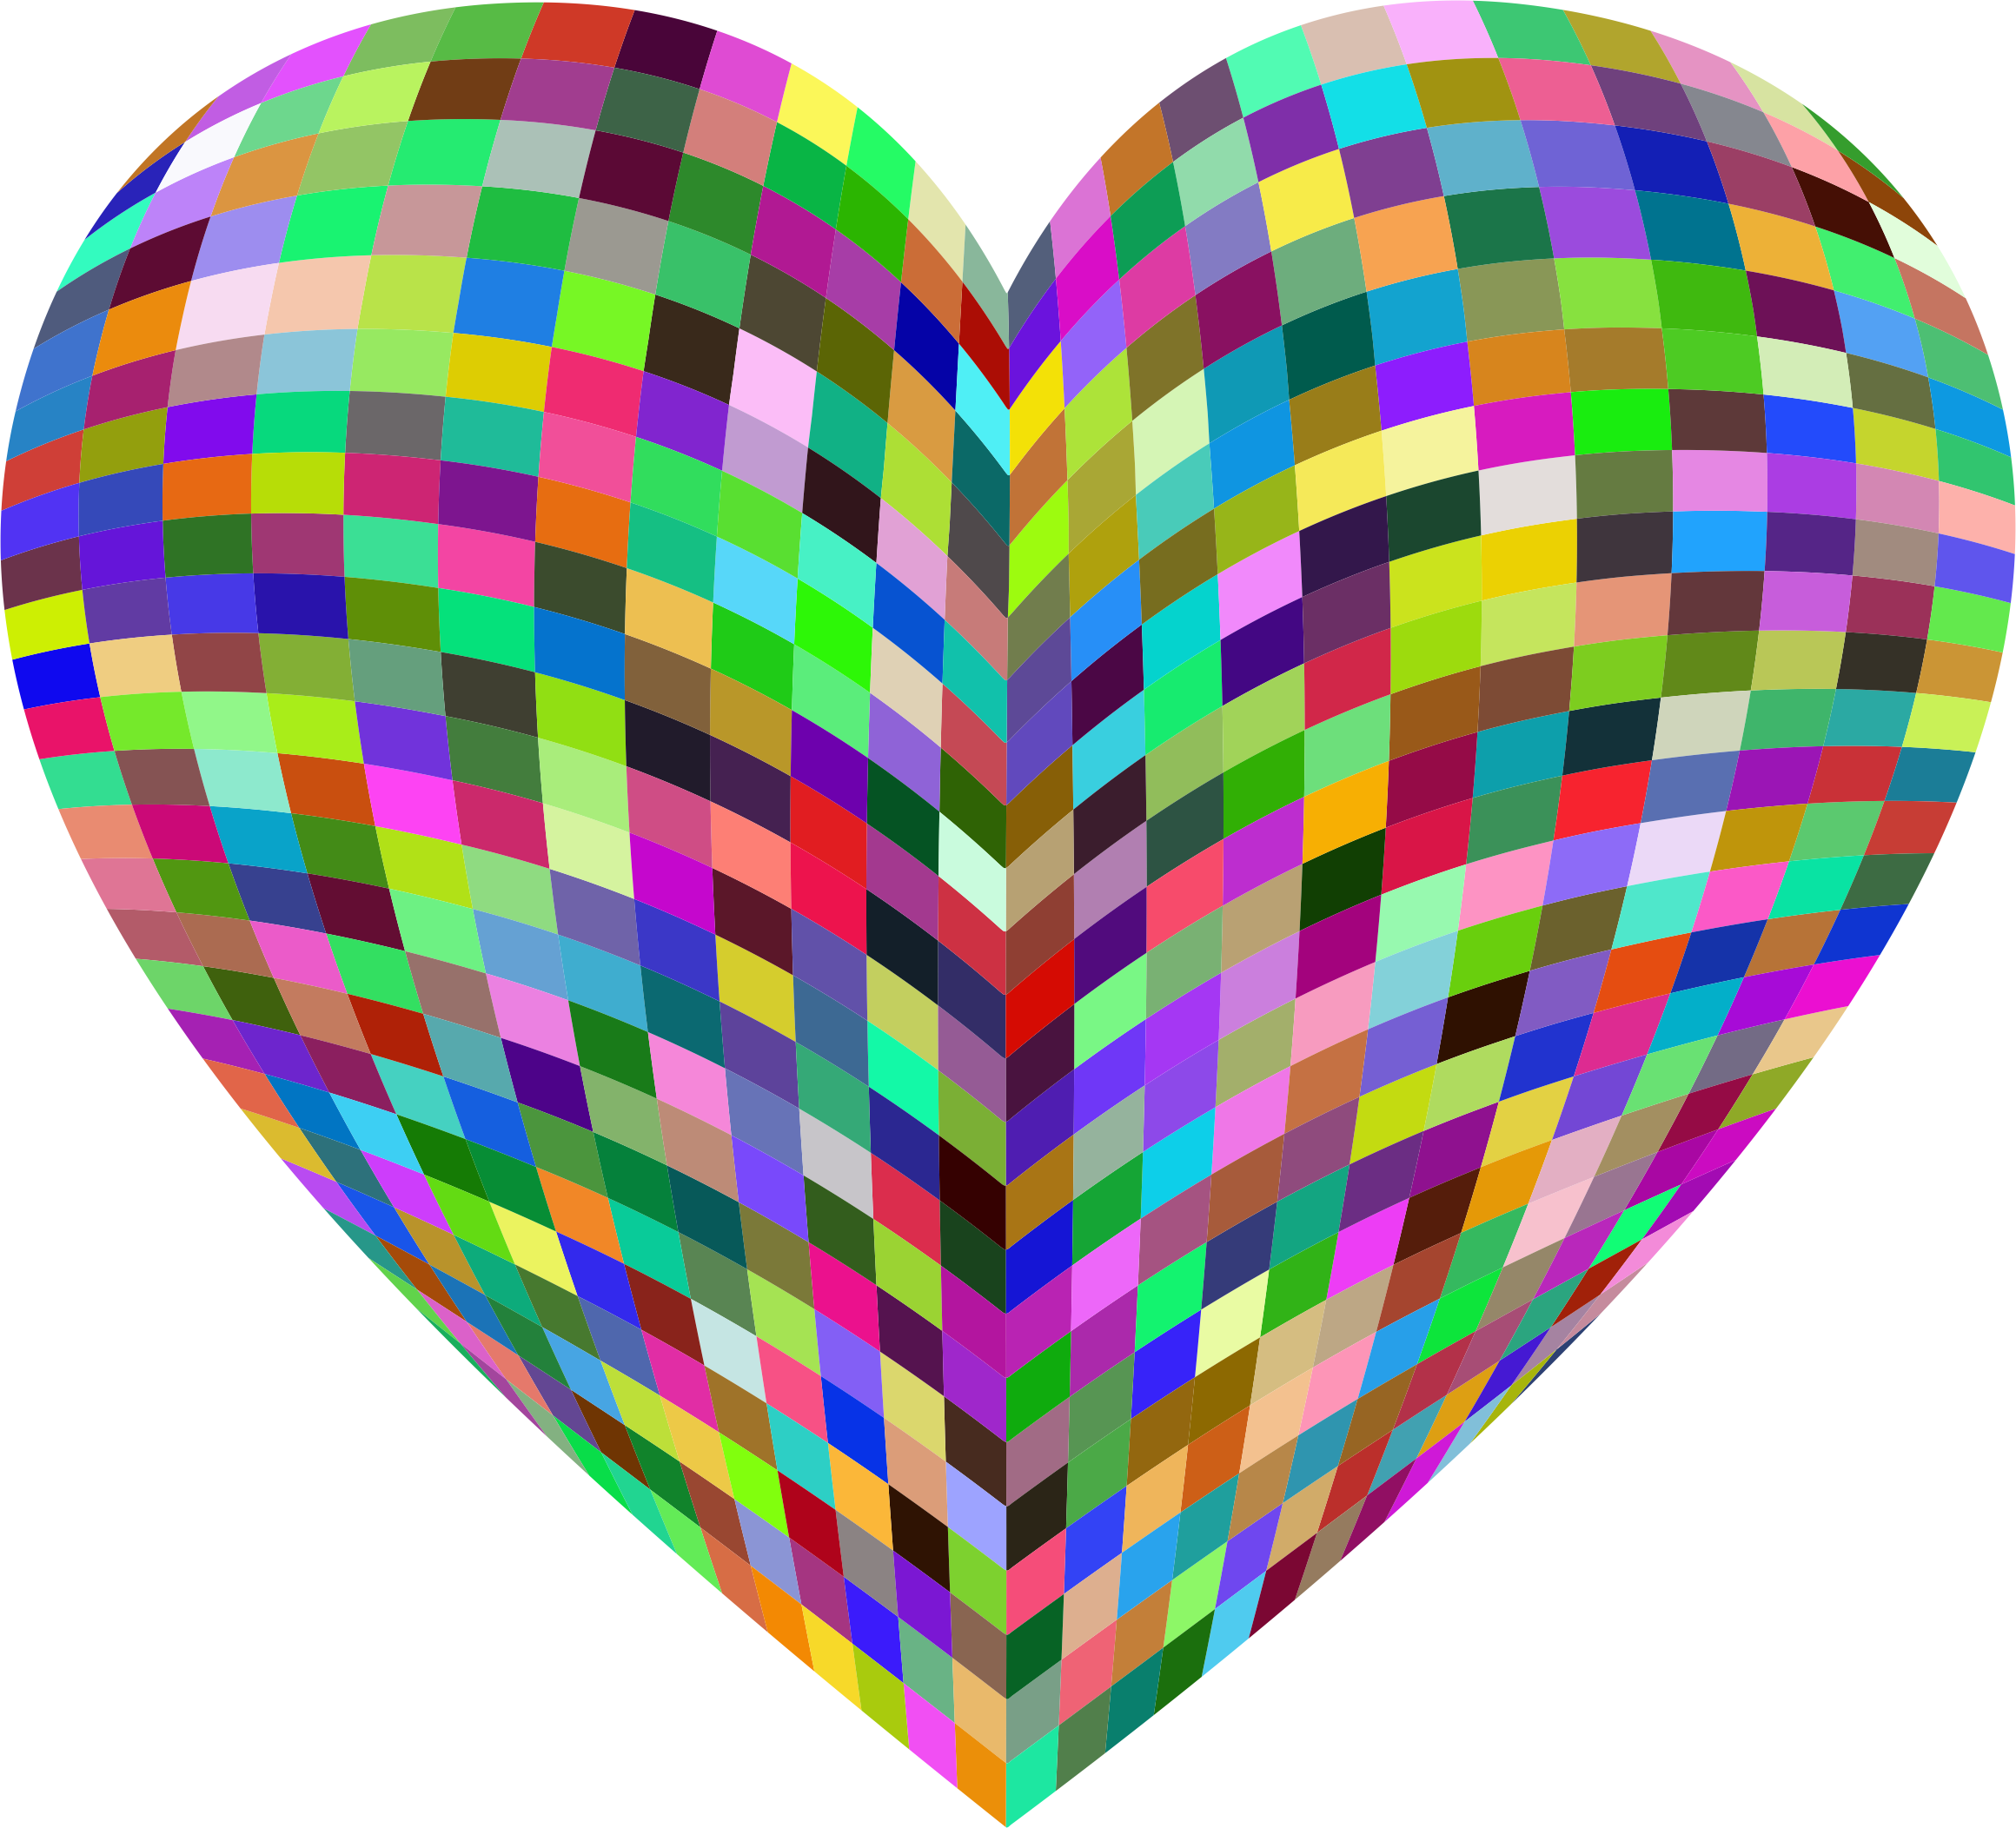 3D Prismatic Grid Heart by GDJ